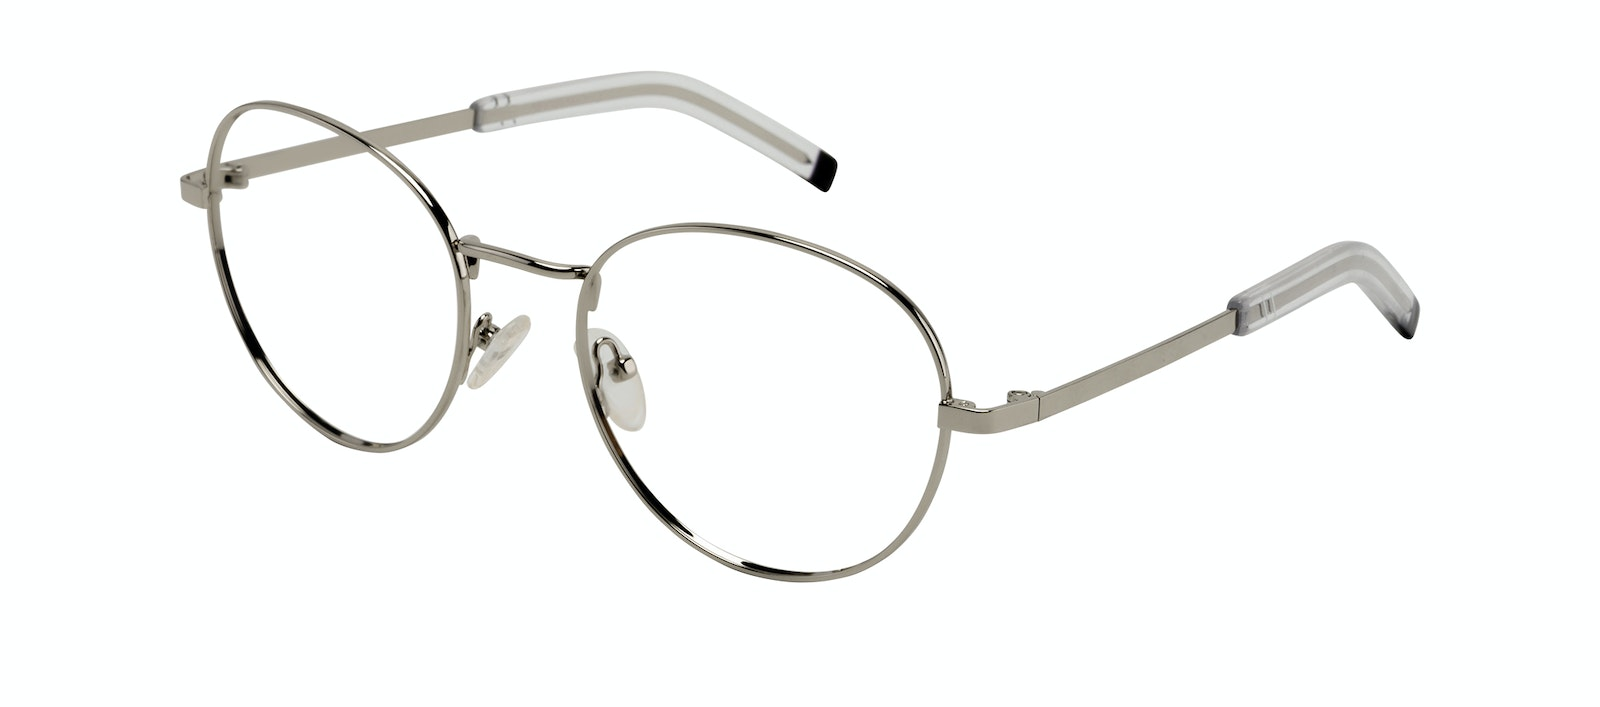 Affordable Fashion Glasses Round Eyeglasses Men Lean XL Silver Tilt